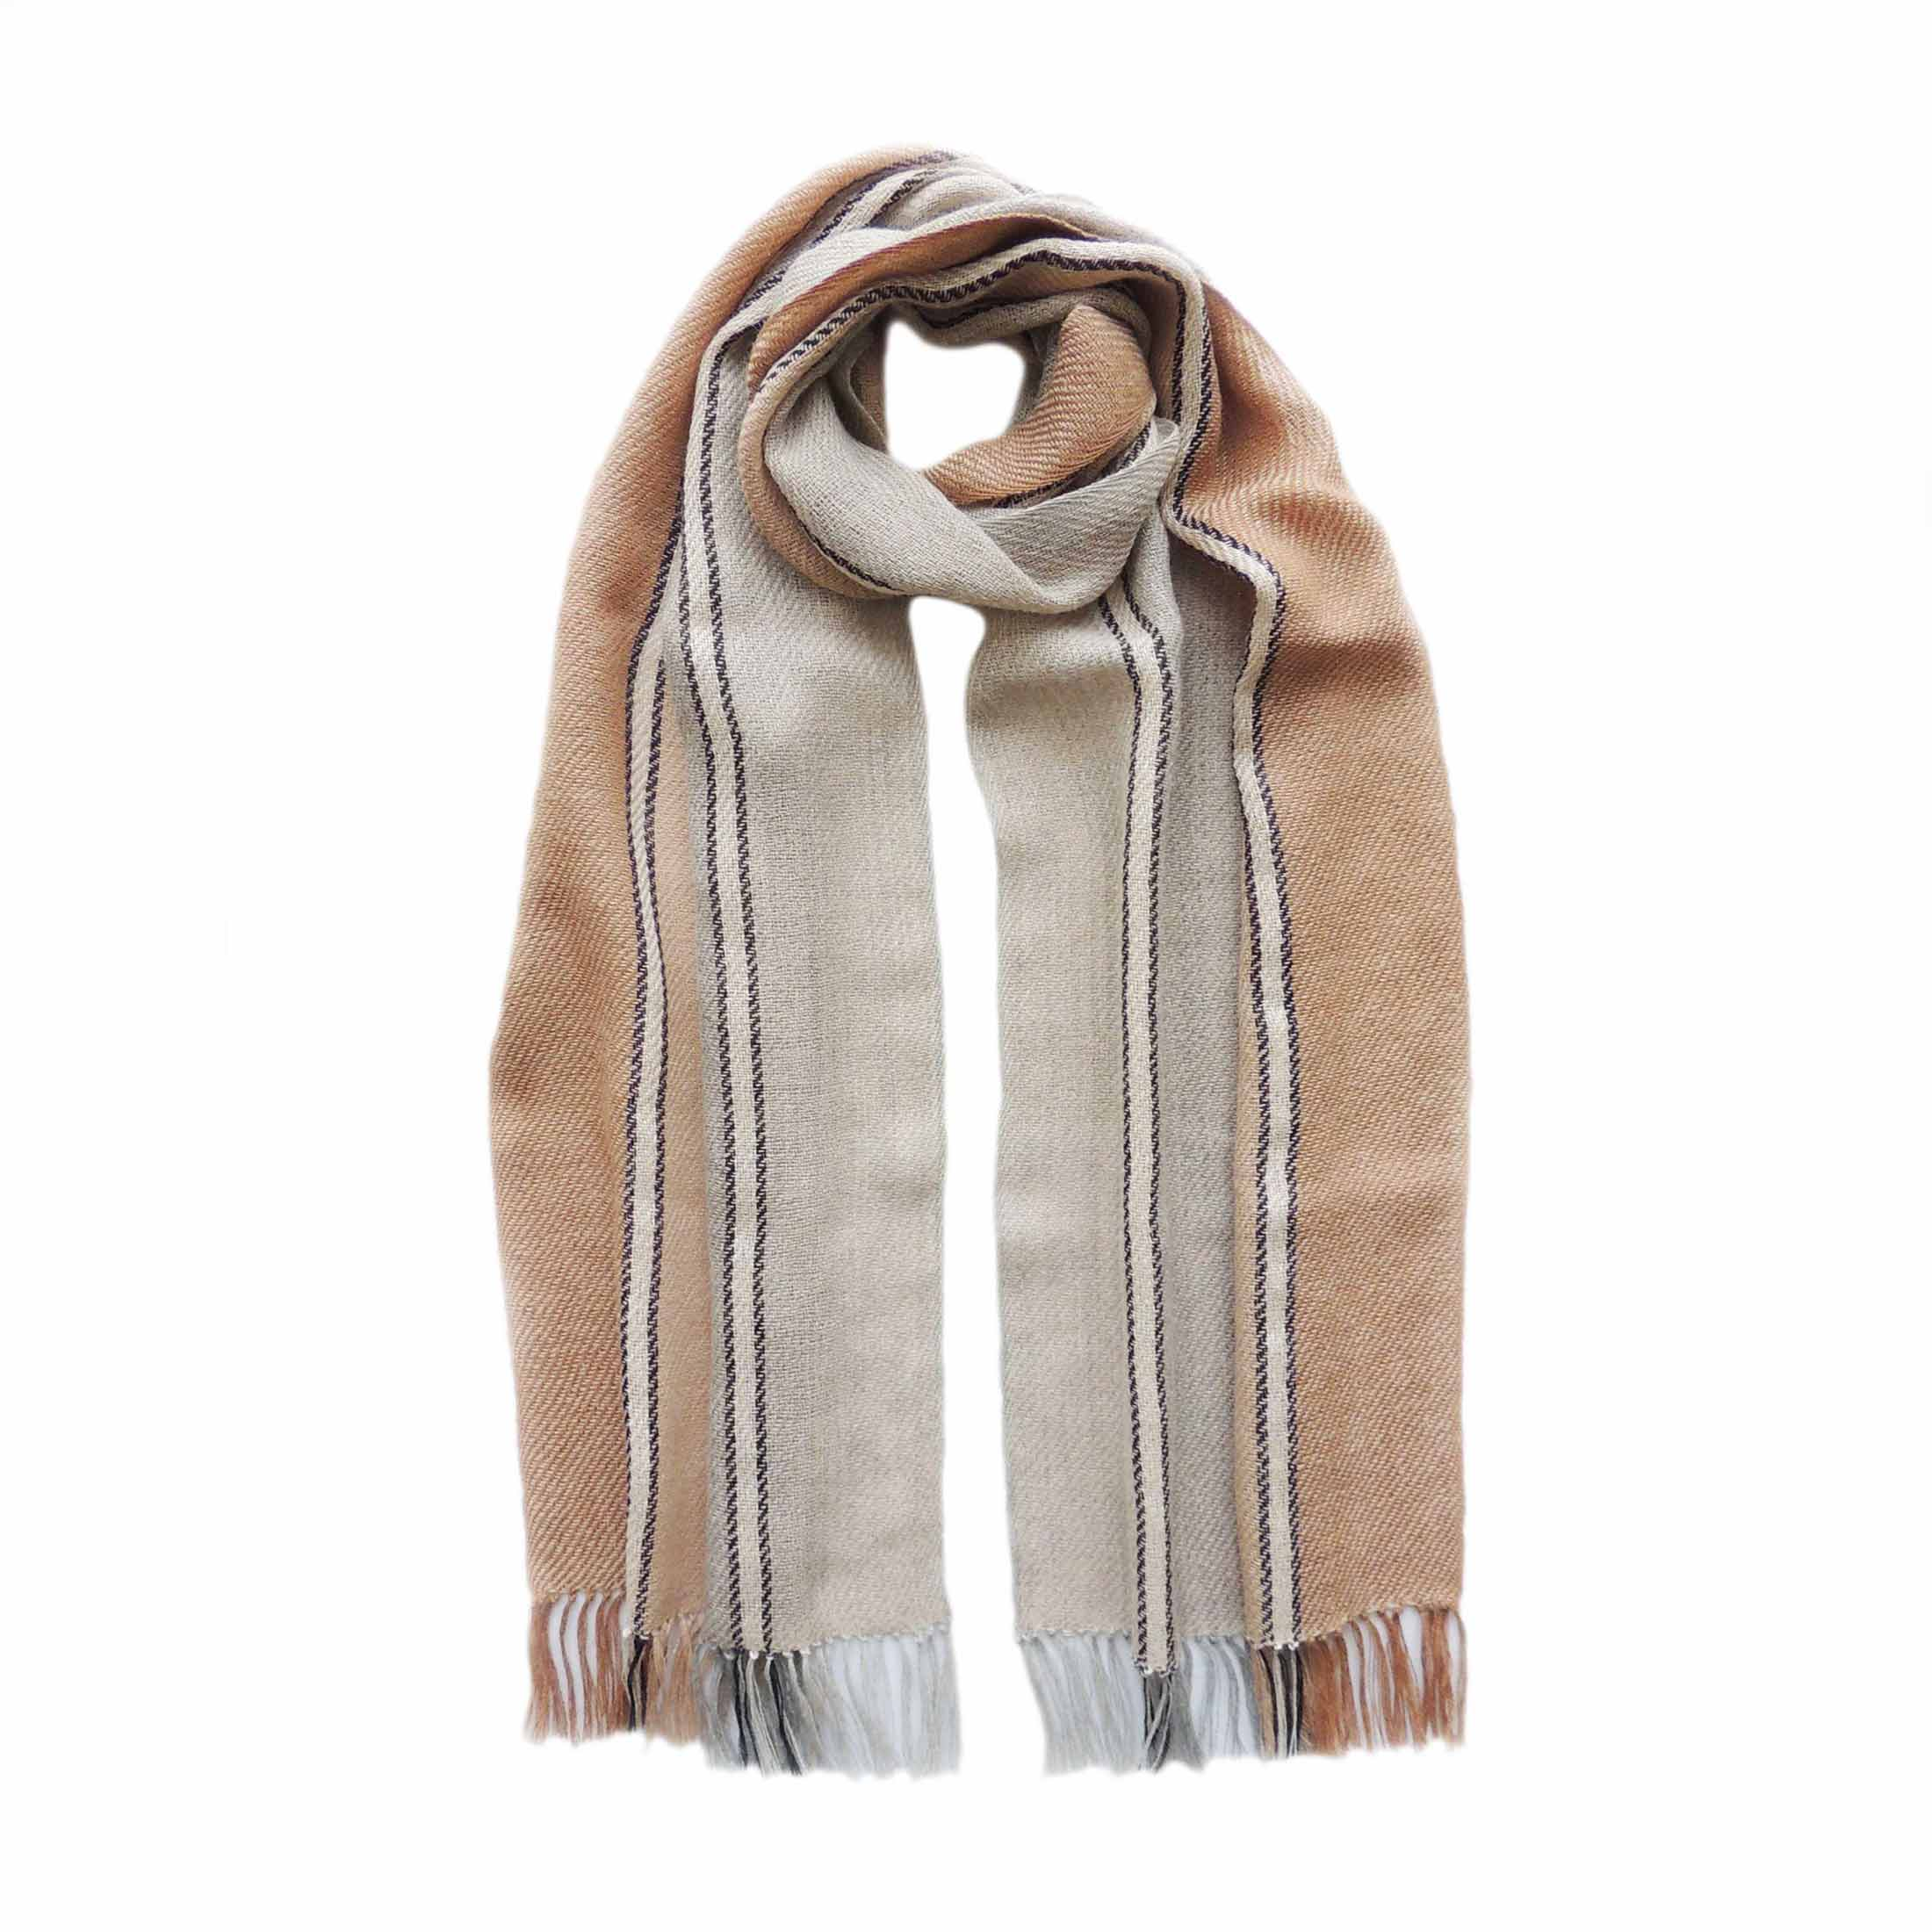 PopsFL Peru wholesale producer Handwoven scarf, baby alpaca stripes with fringes. unisex